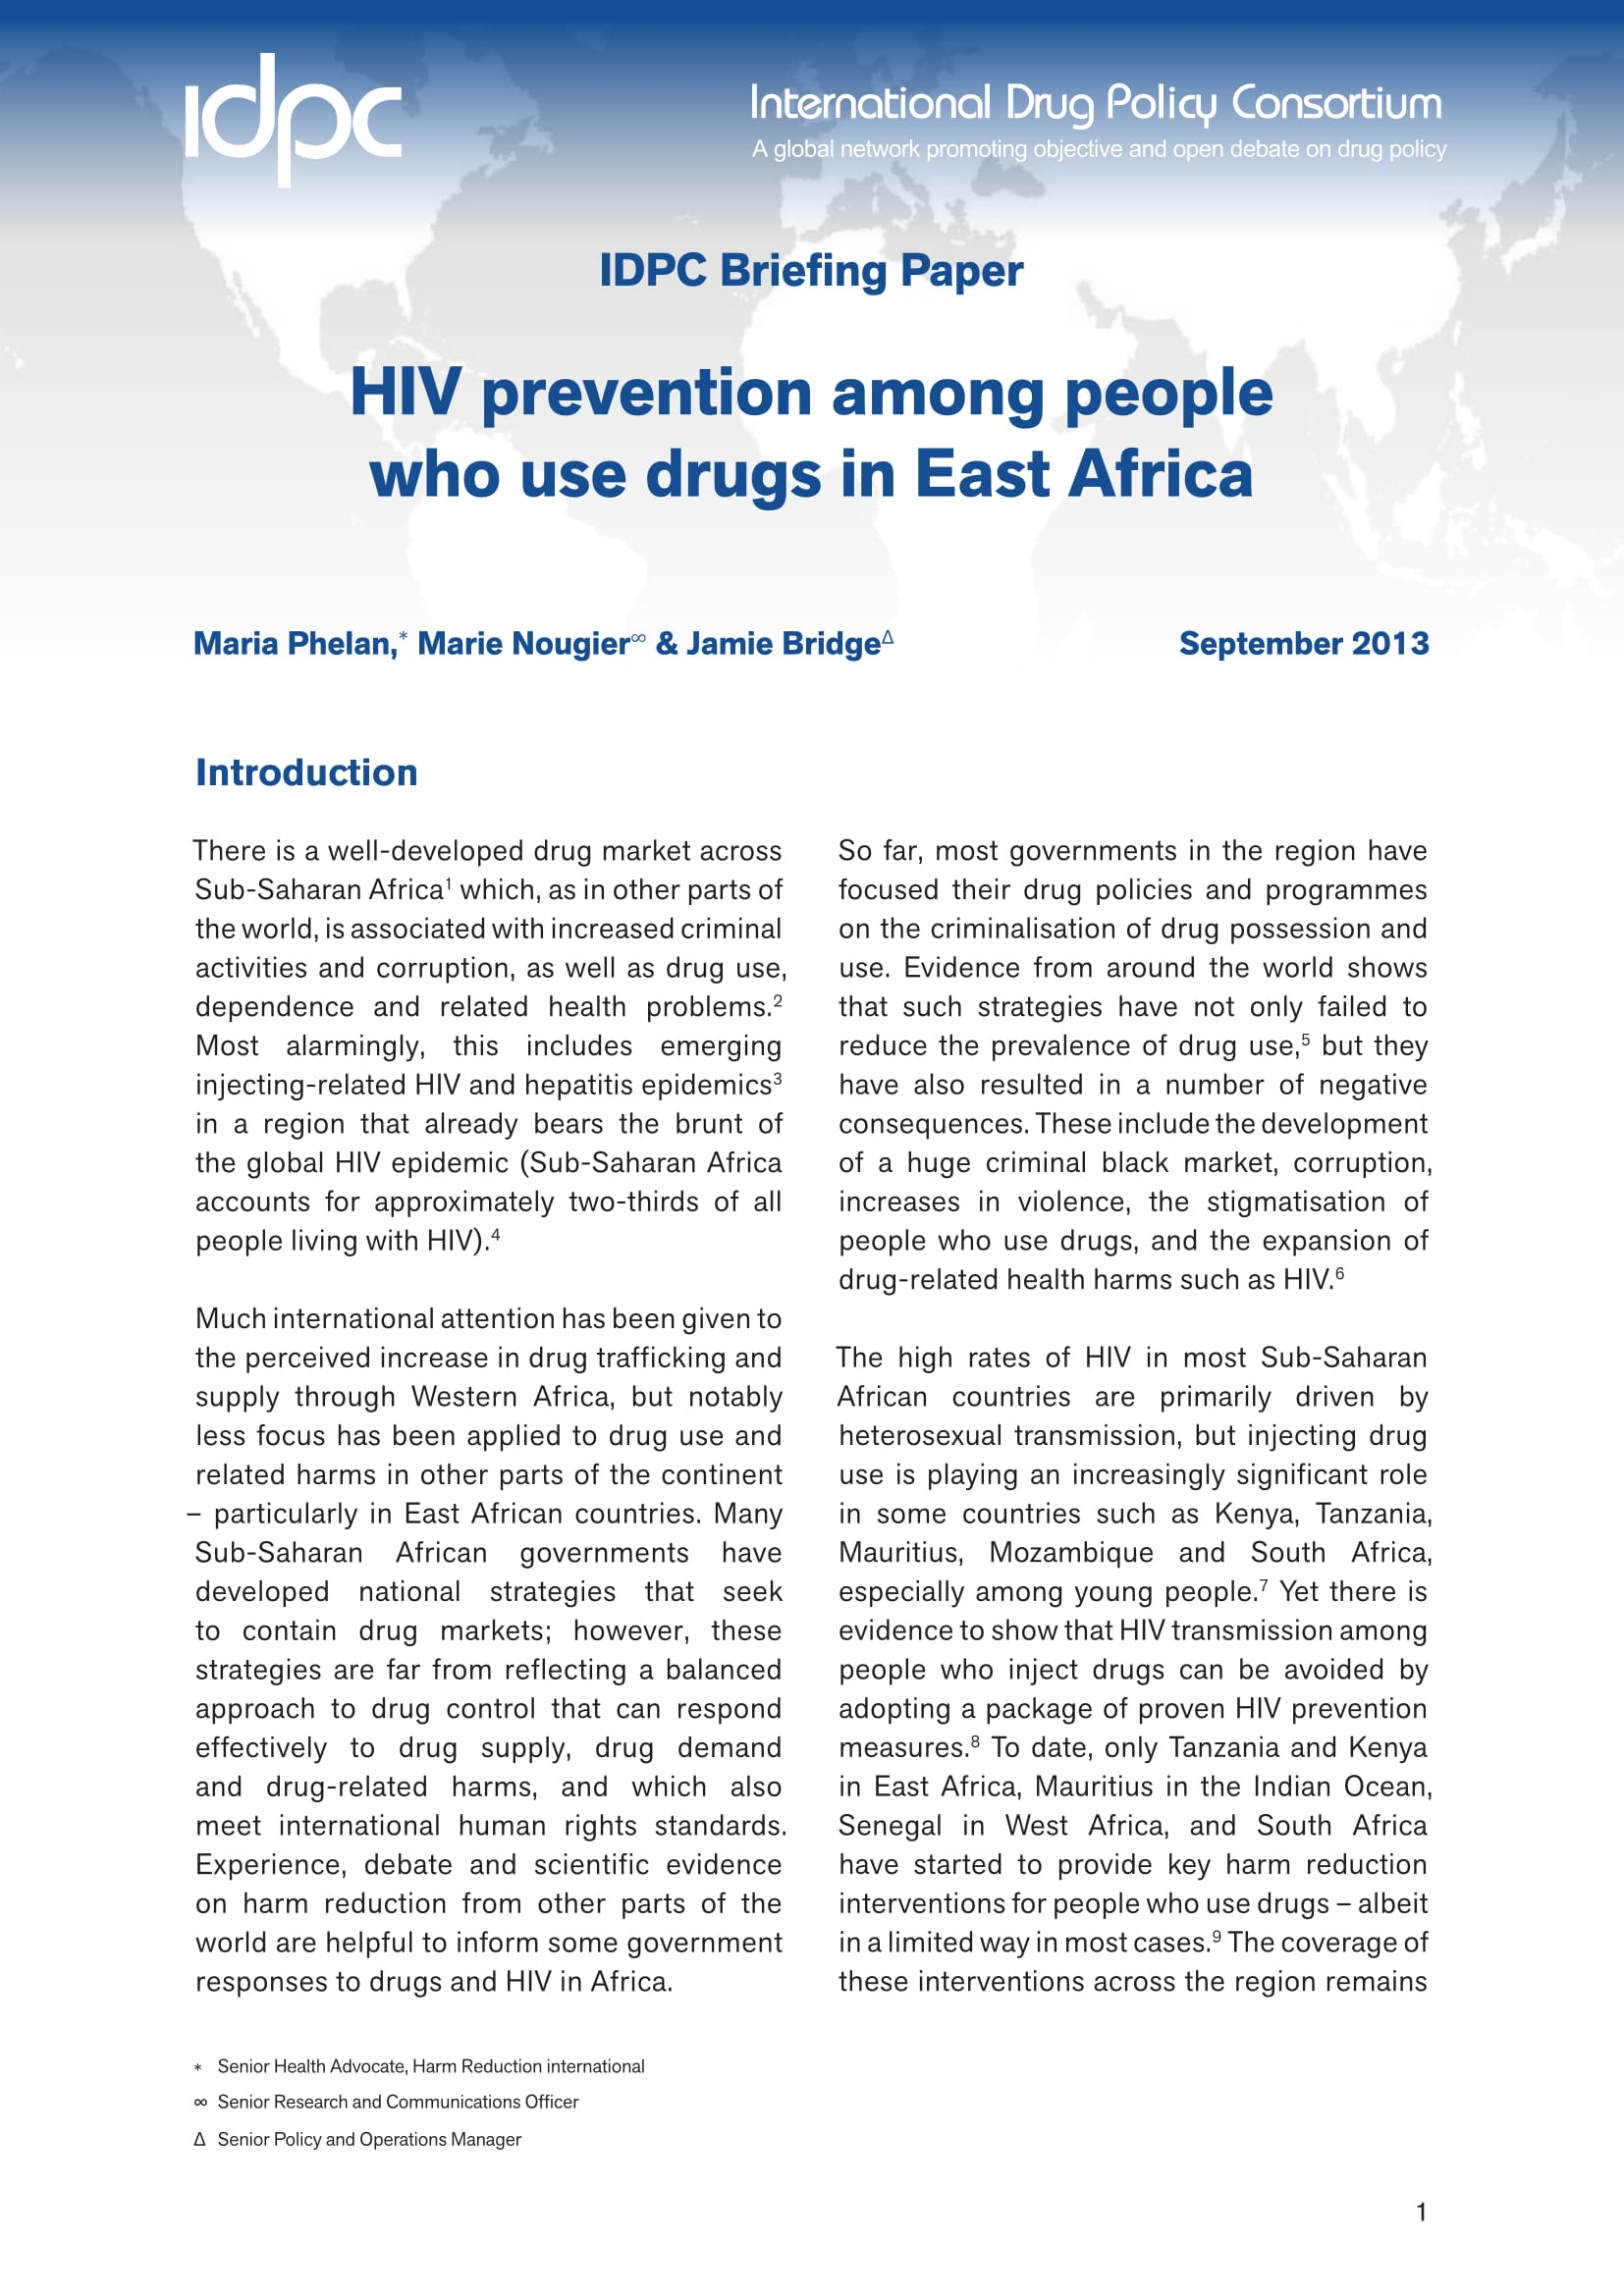 IDPC Briefing Paper: HIV prevention among people who use drugs in East Africa